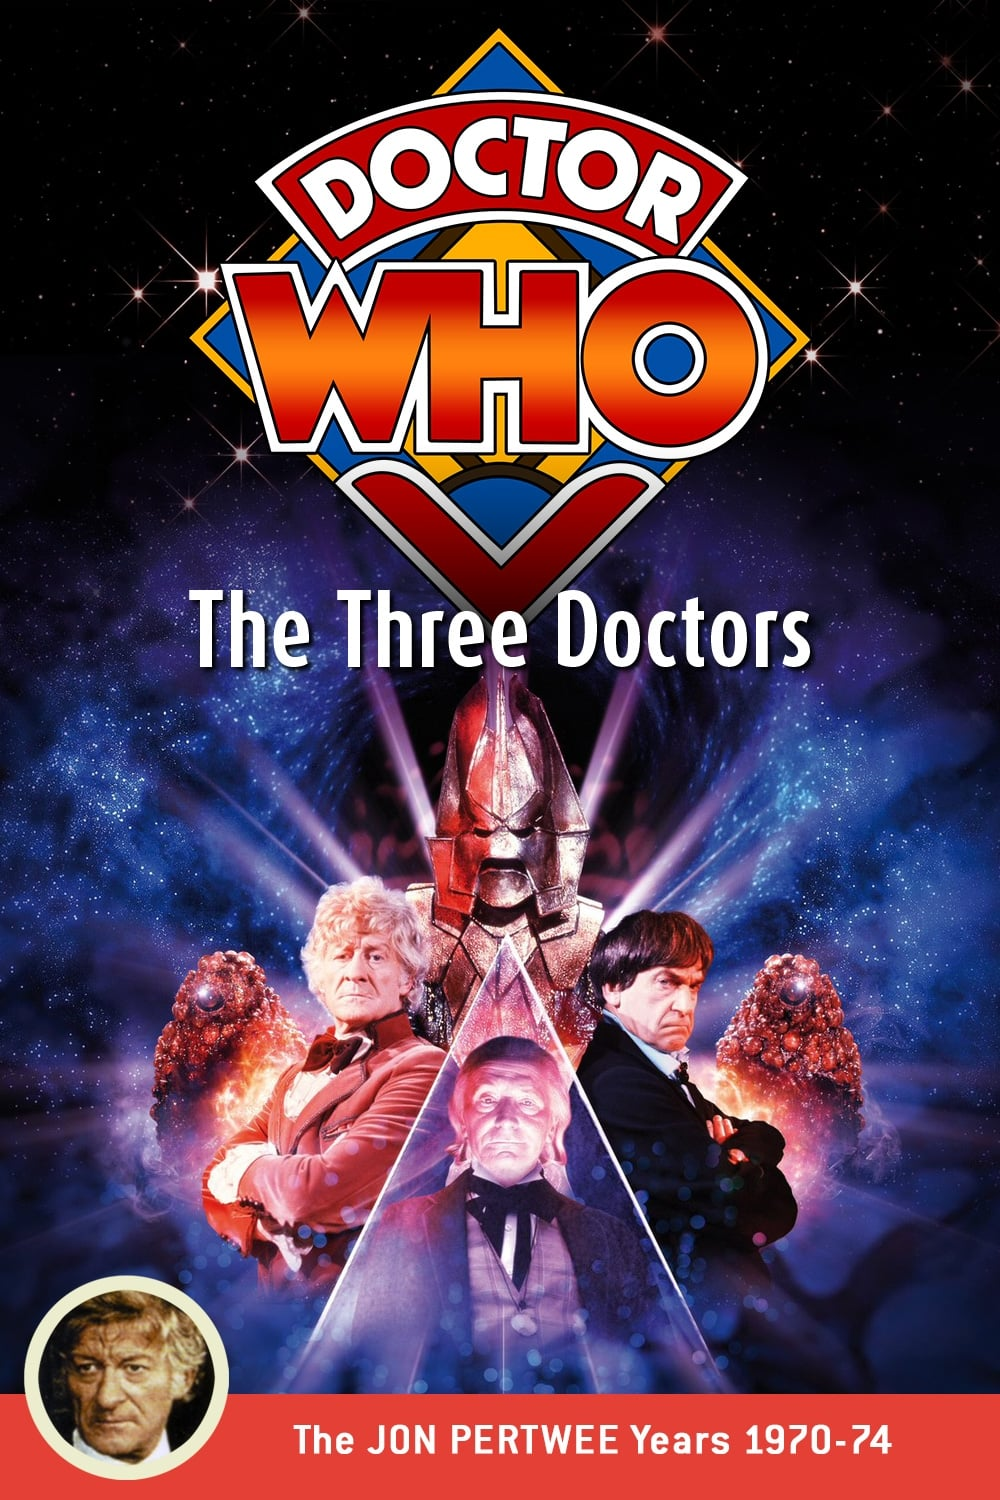 Doctor Who: The Three Doctors (1973)